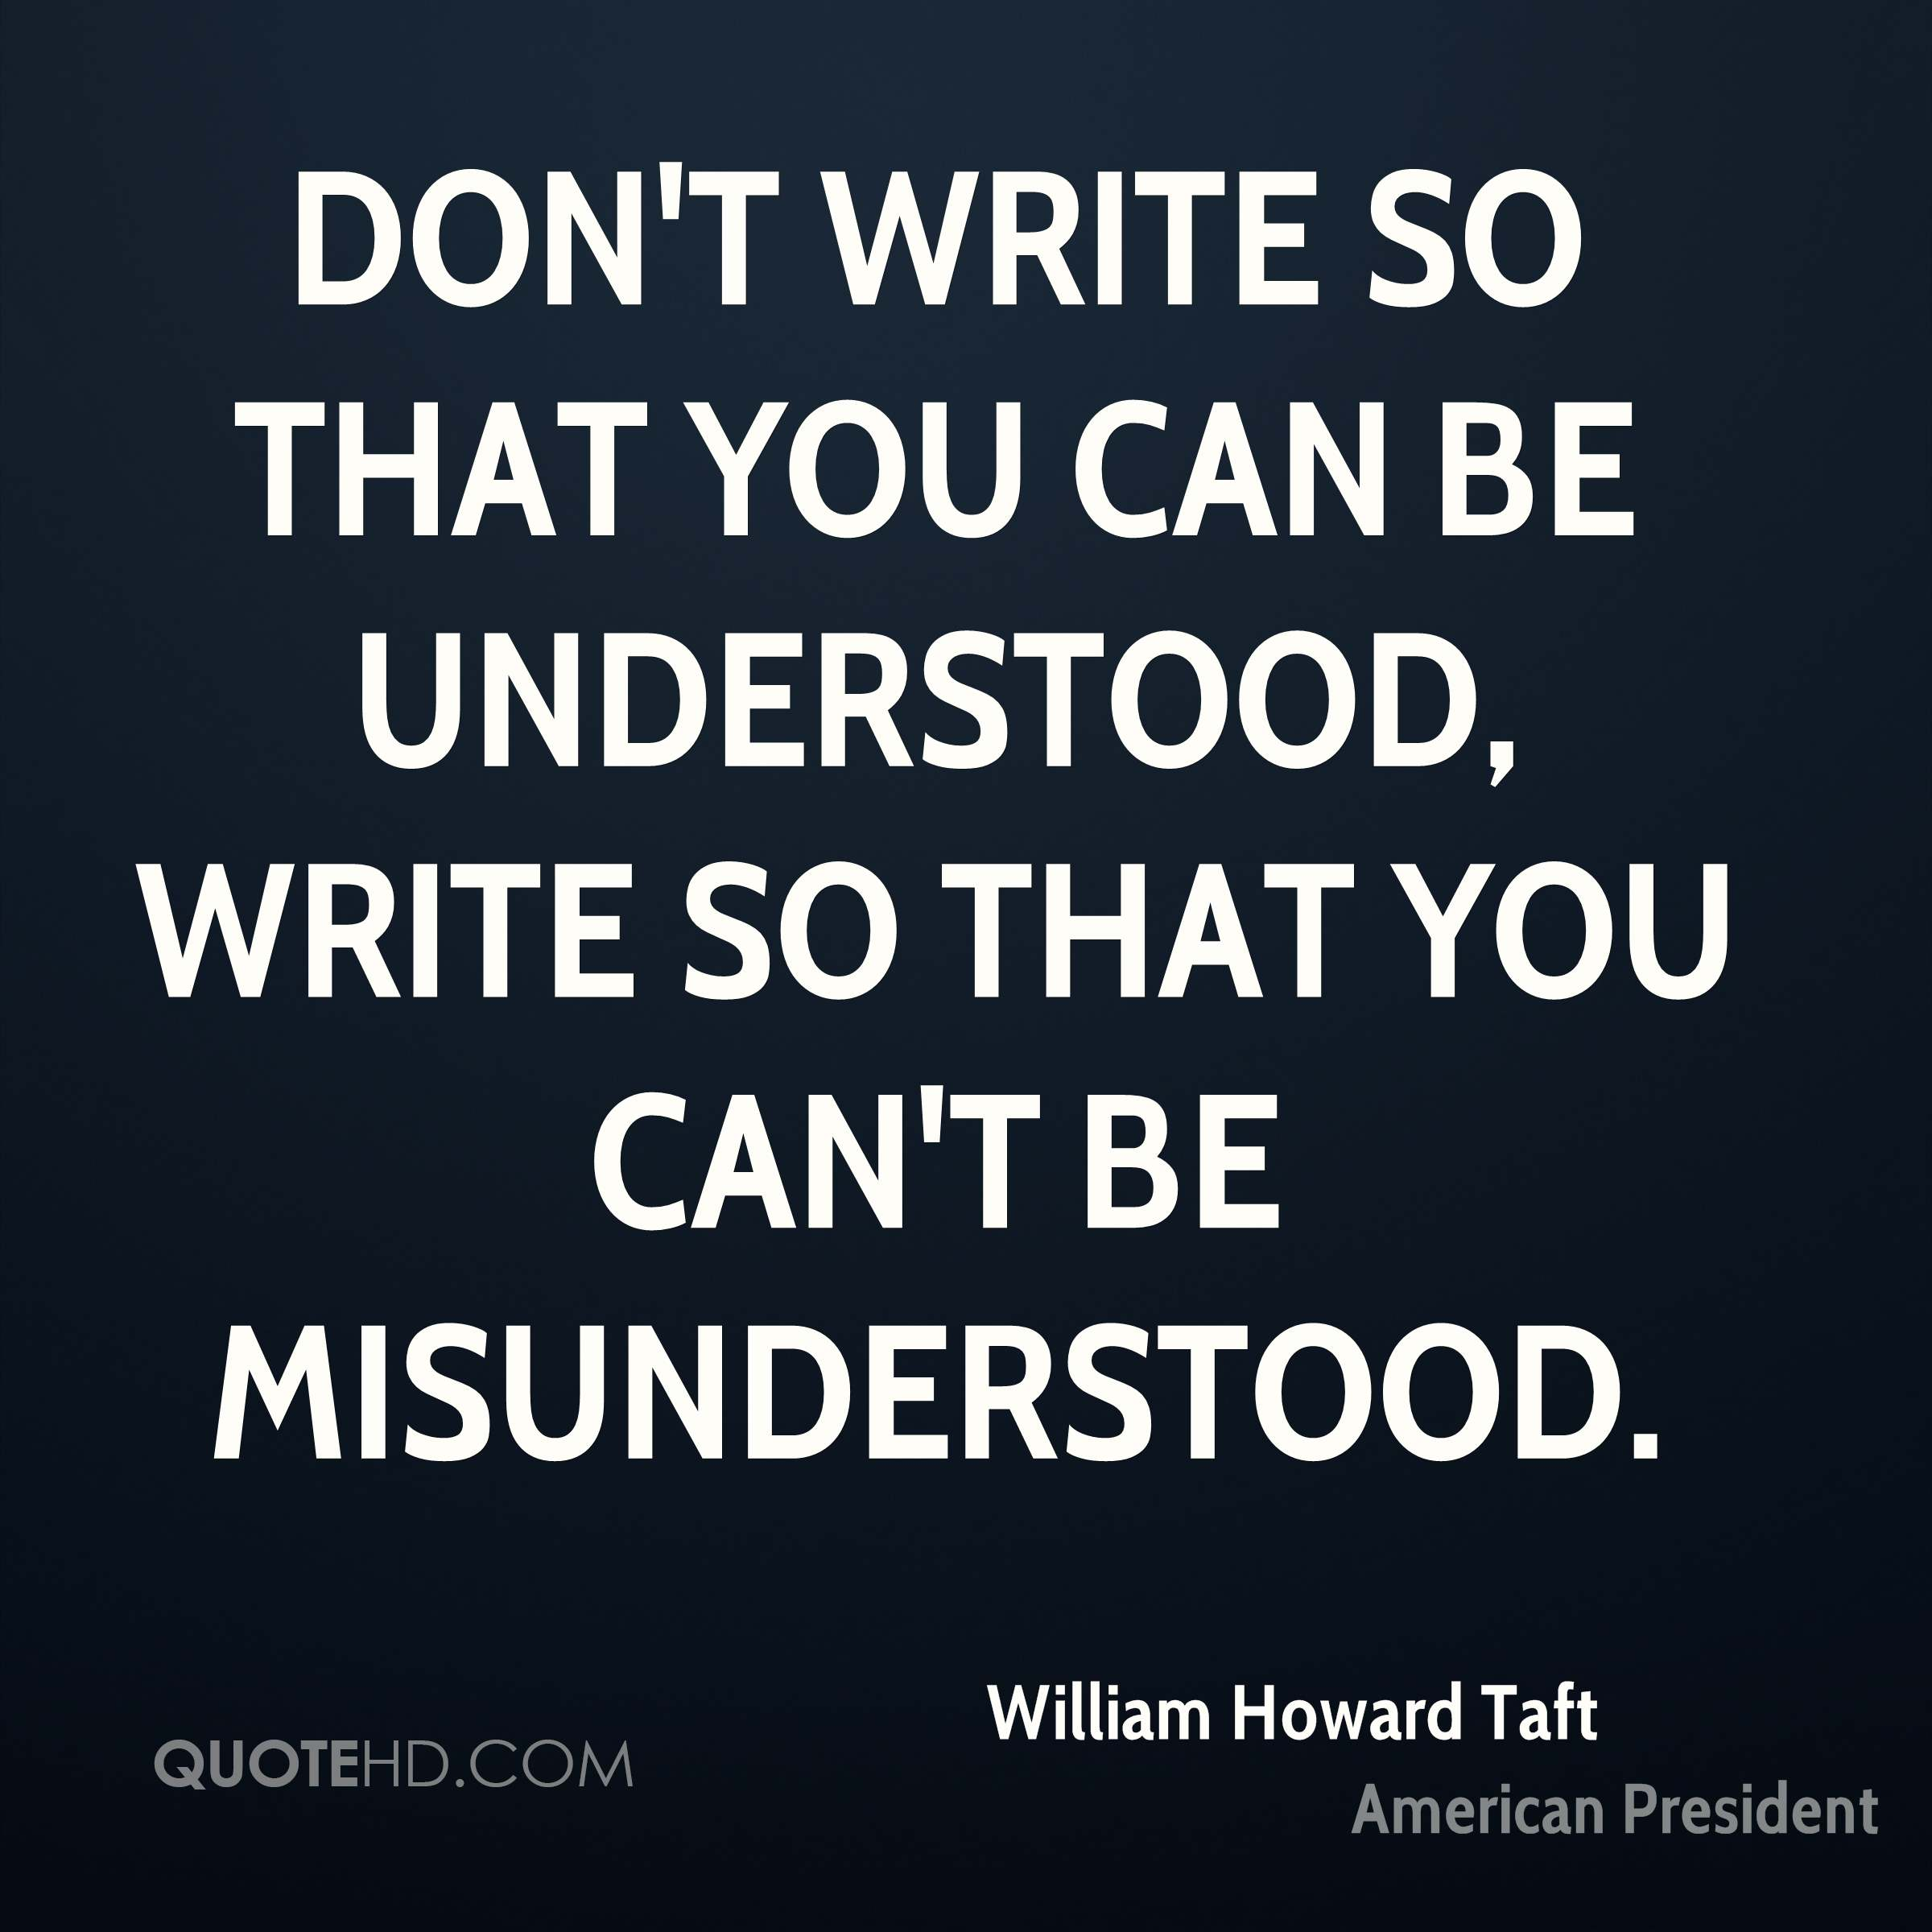 Don't write so that you can be understood, write so that you can't be misunderstood.